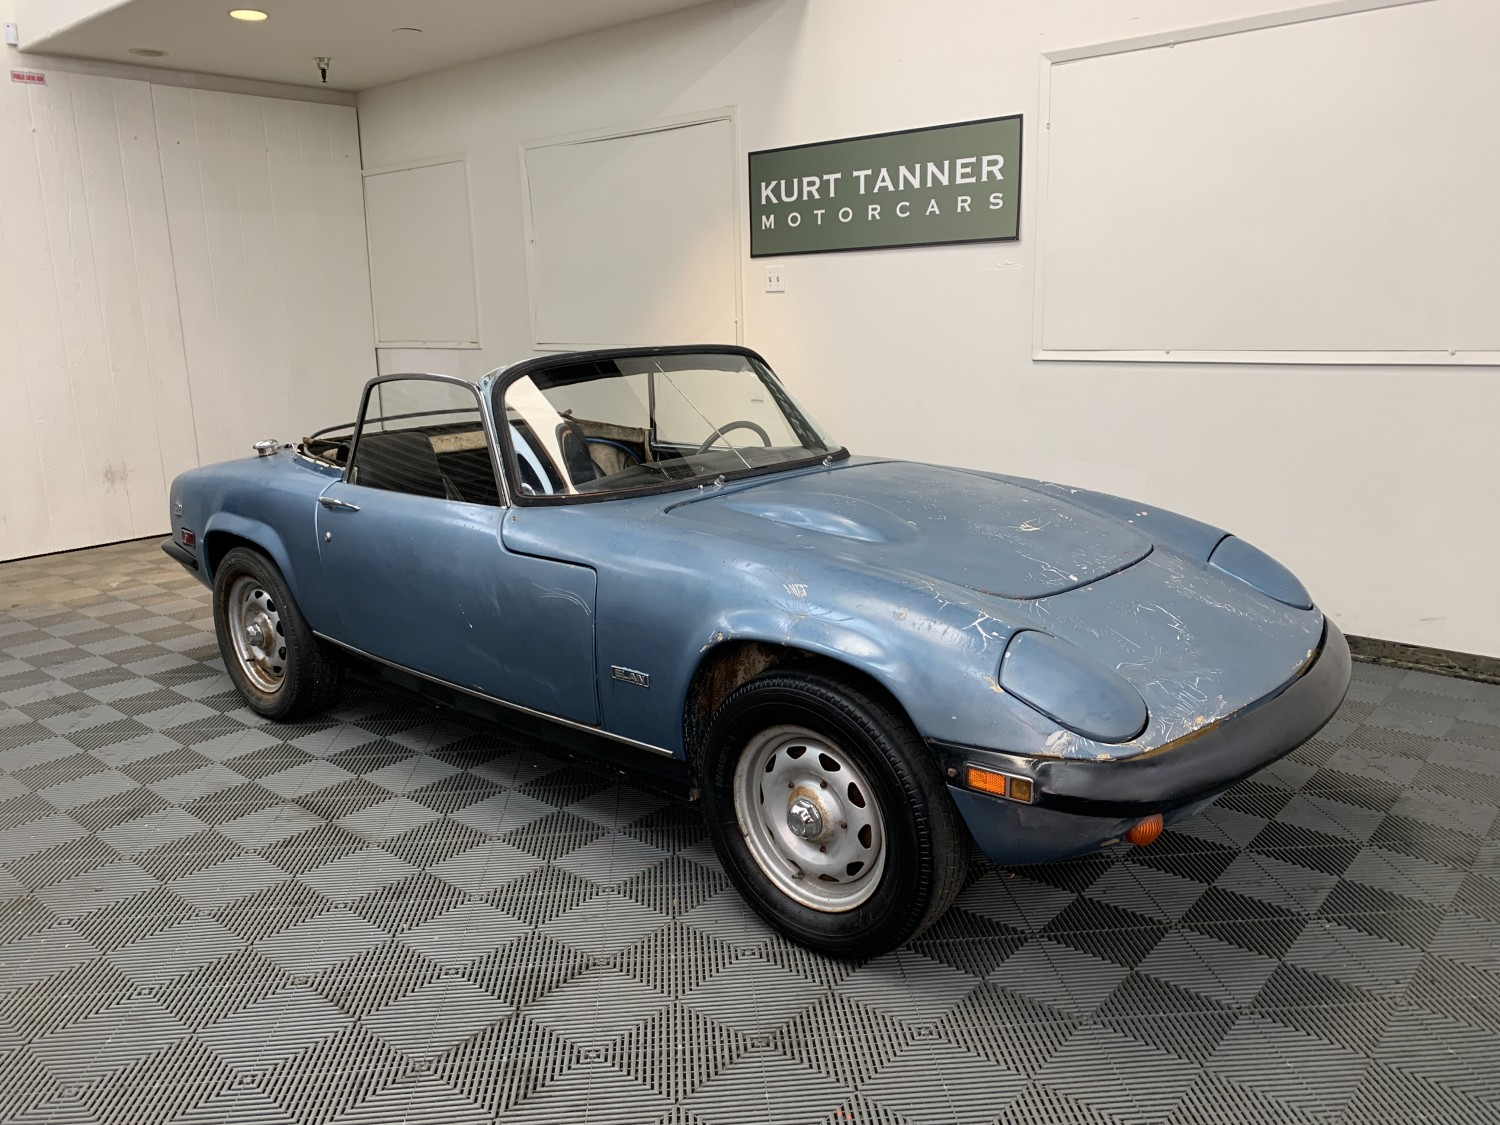 1971 LOTUS ELAN SERIES 4 SE CONVERTIBLE. BLUE WITH BLACK TRIM. 4-SPEED, KNOCK-OFF PEG DRIVE WHEELS. 1600 cc TWIN CAM ENGINE. EXCELLENT CAR FOR IMPROVEMENT. EARLY CAR #0063K.